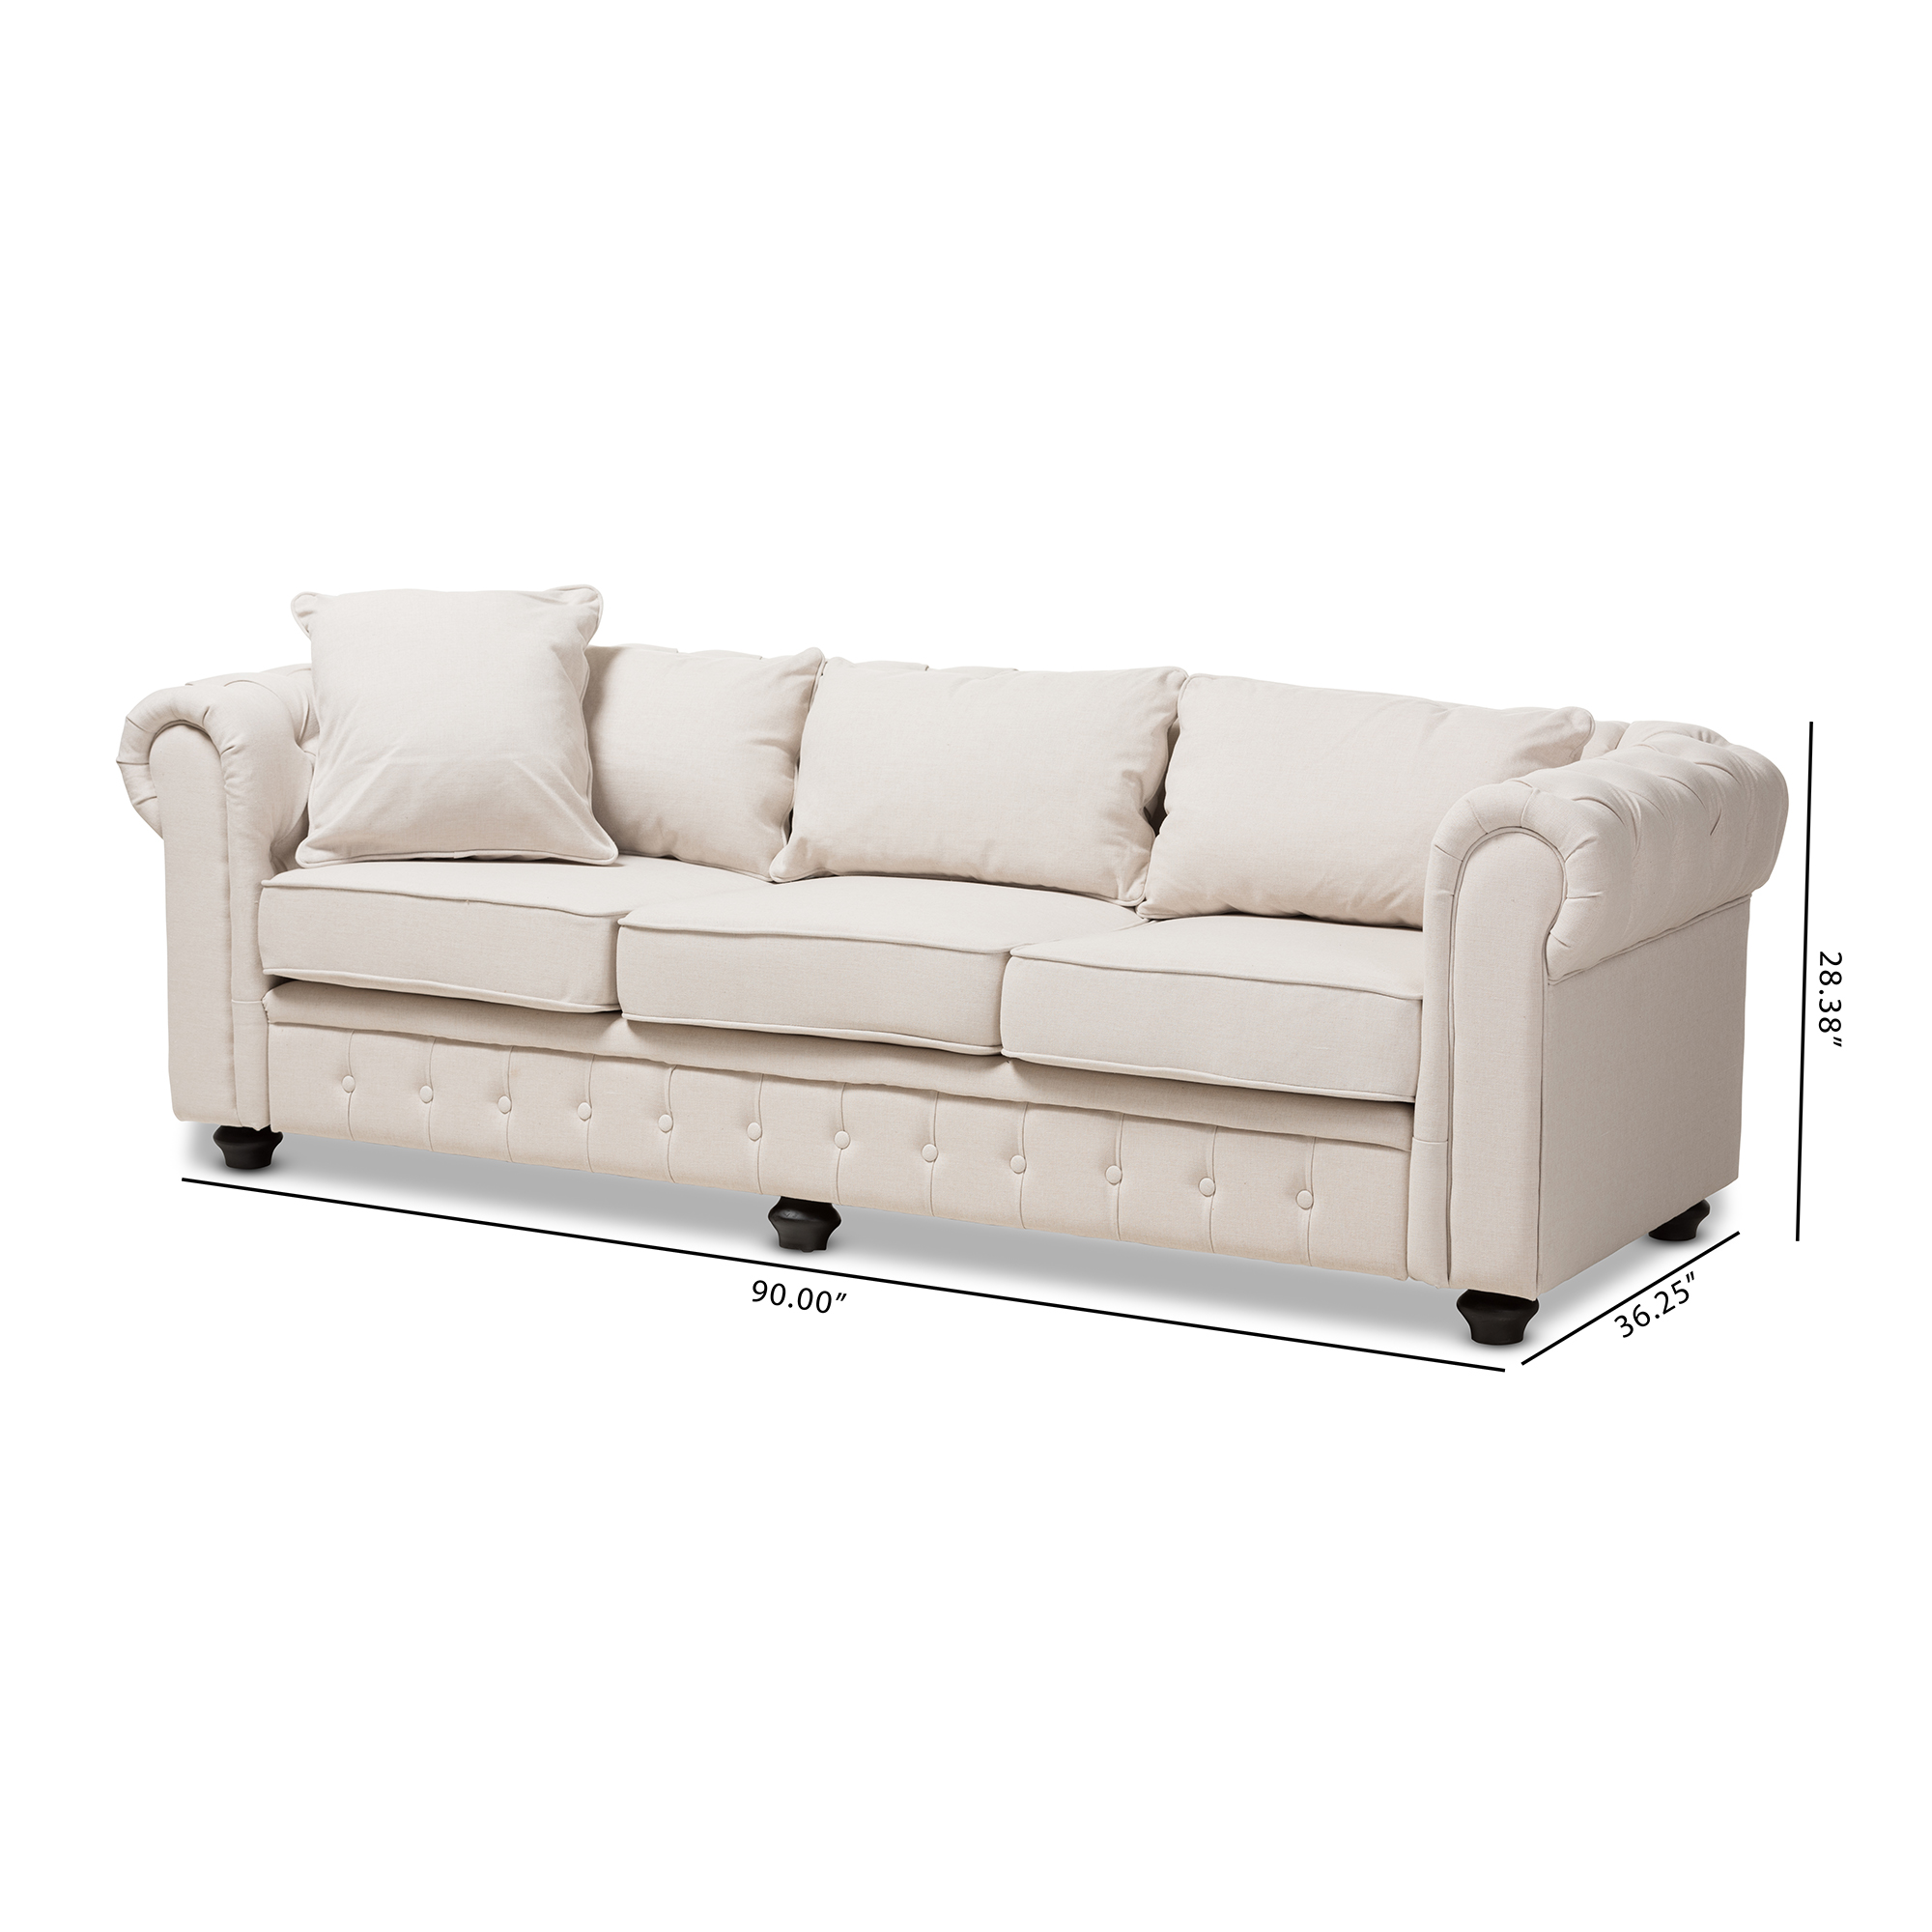 Chesterfield Sofa Baxton Studio Alaise Modern Classic Linen Tufted Scroll Arm Chesterfield Sofa Multiple Colors